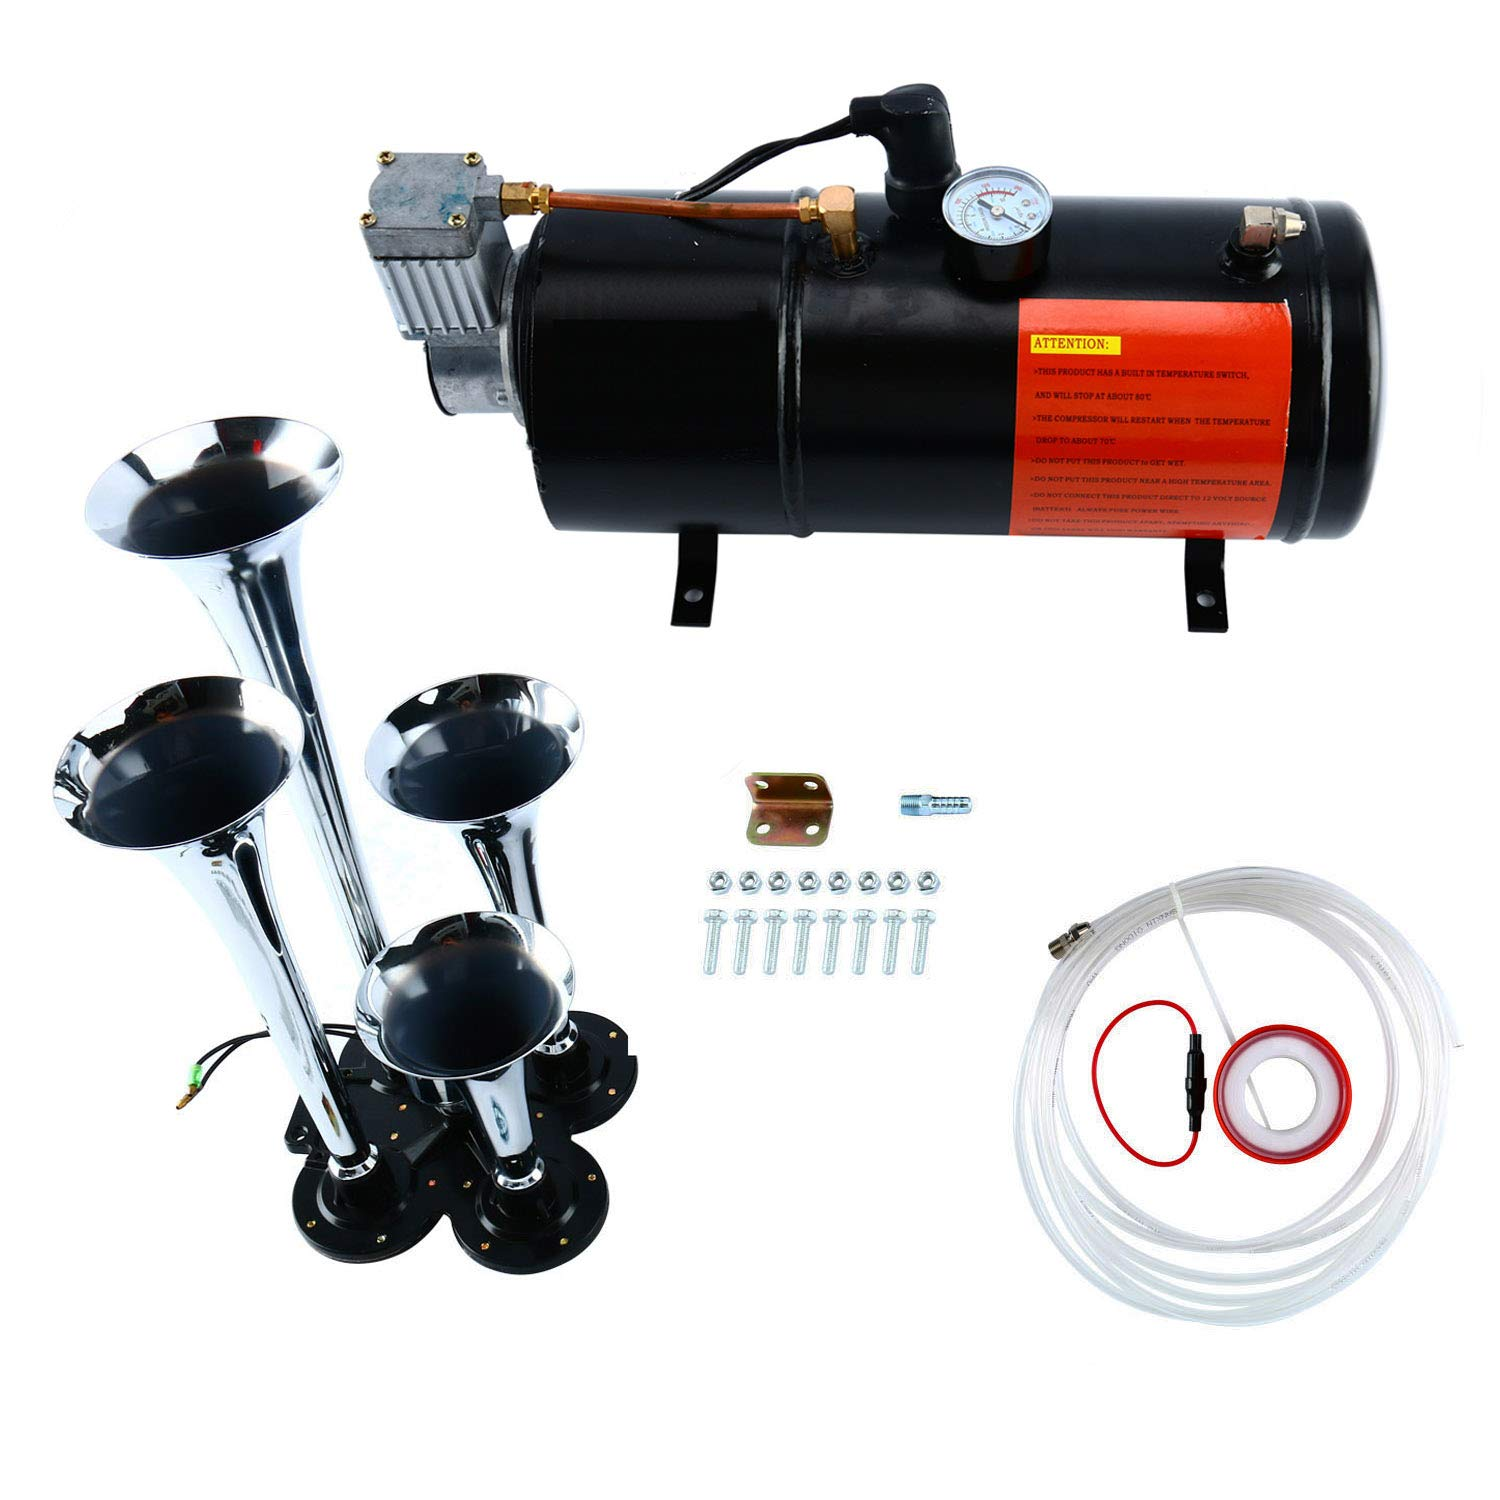 8MILELAKE Air Compressor Tool 150 PSI 12V with Chrome 4-Trumpet Air Horn for Train Truck freebirdtrading